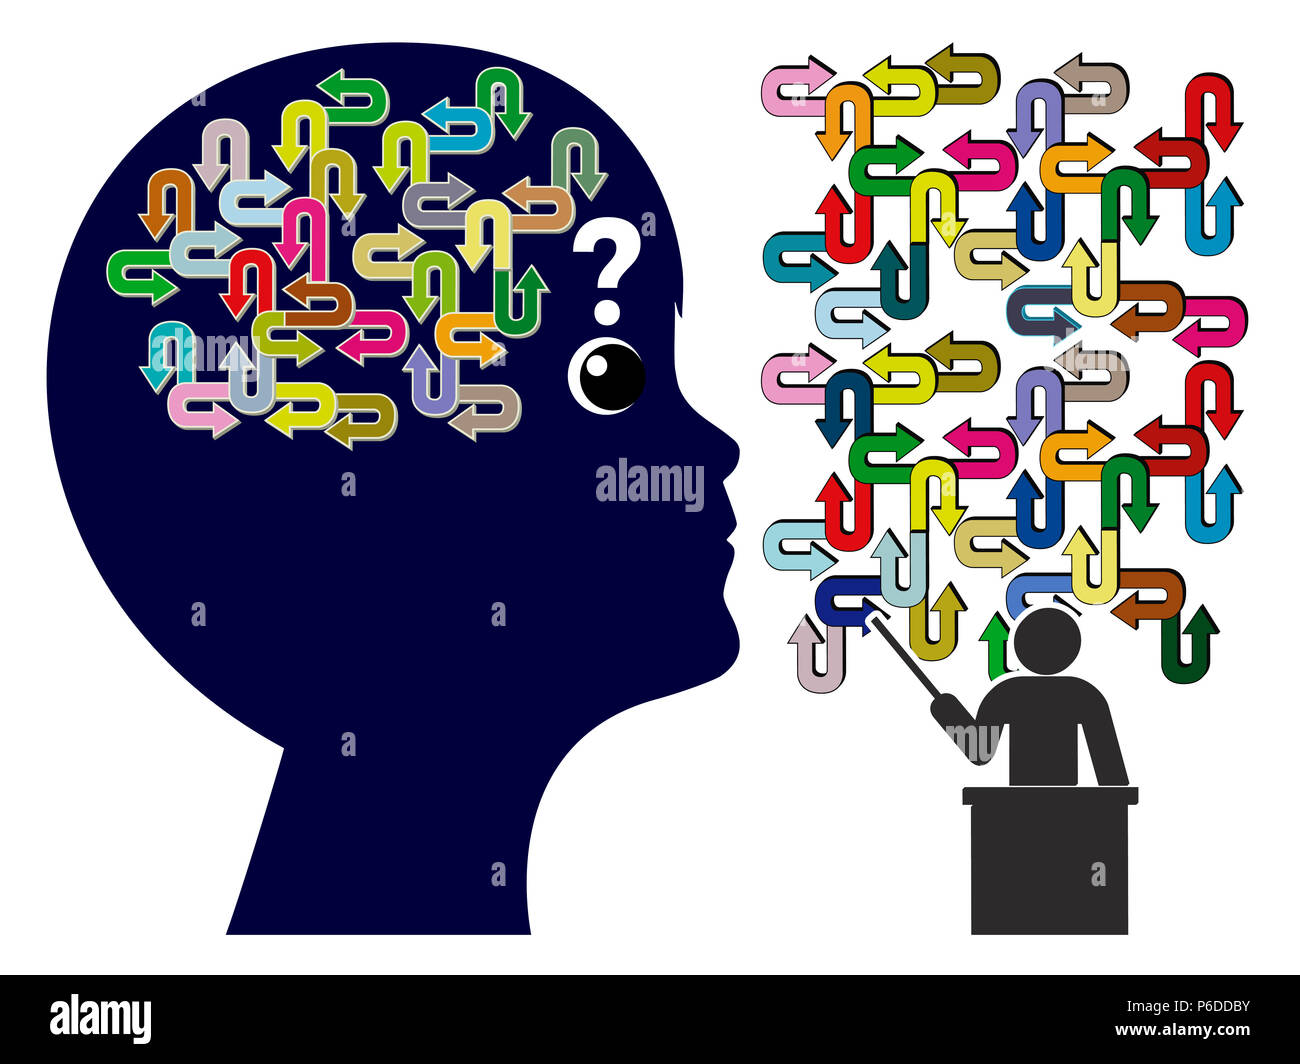 Confusion helps children to learn at school or at home. - Stock Image